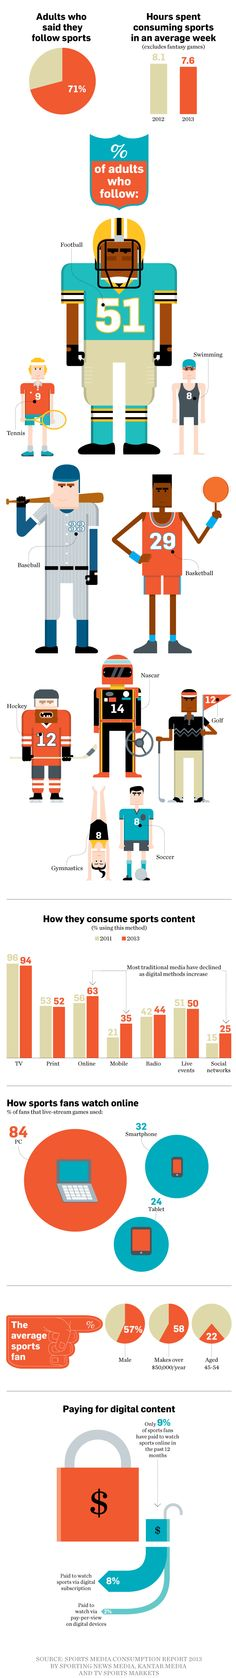 Sports Fans Slowly Move From TV to the Internet But only 9% pay for what they see